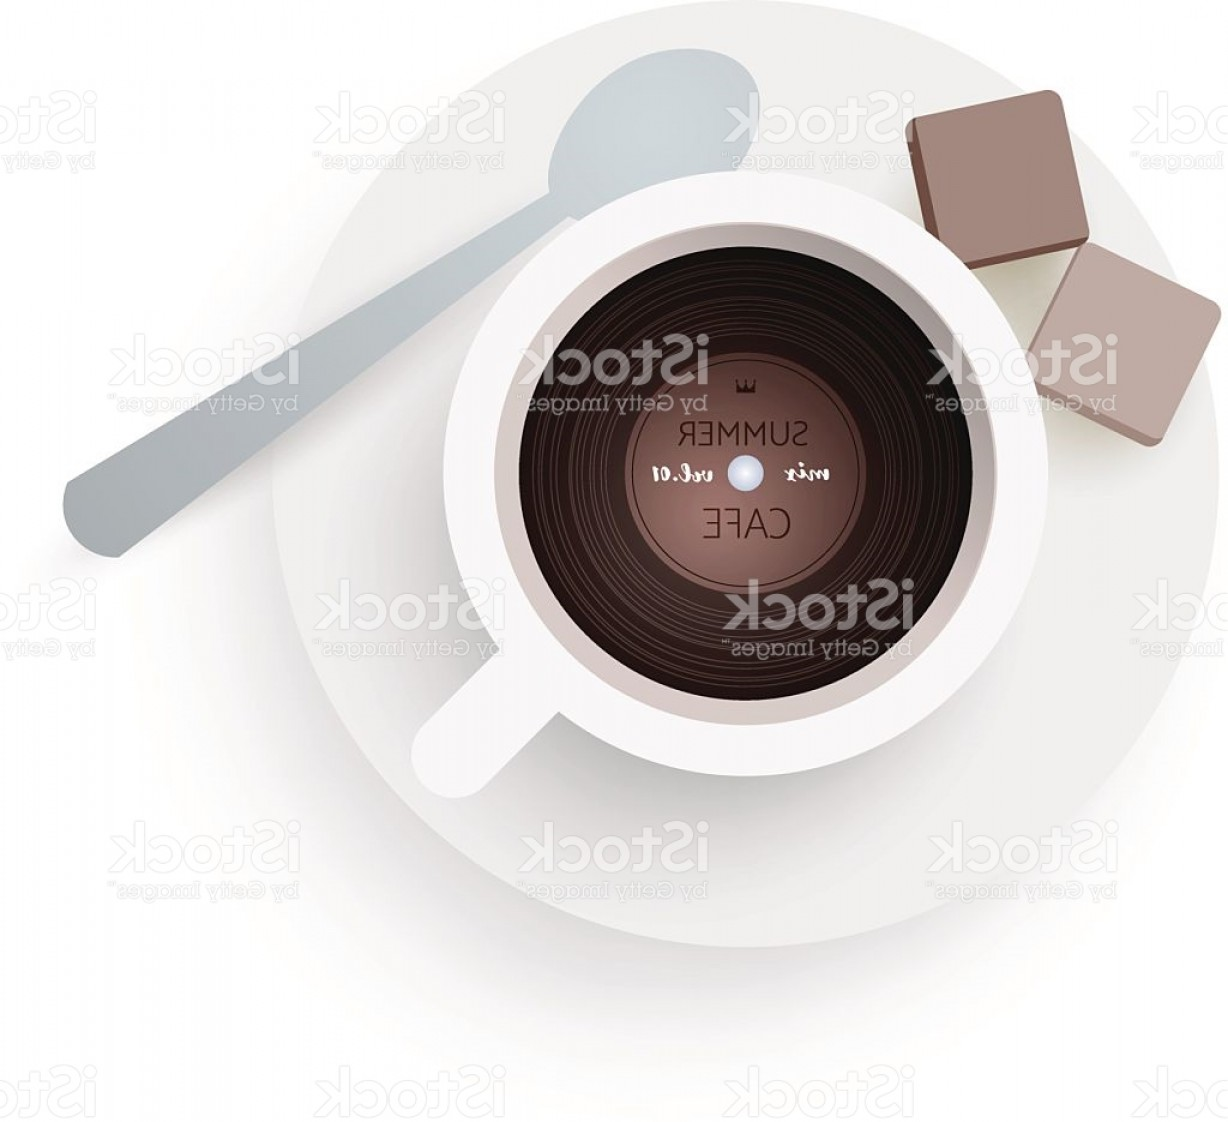 Vinyl Roll Vector: Dj Cafe Abstract Cup Of Coffee With Vinyl Record Gm